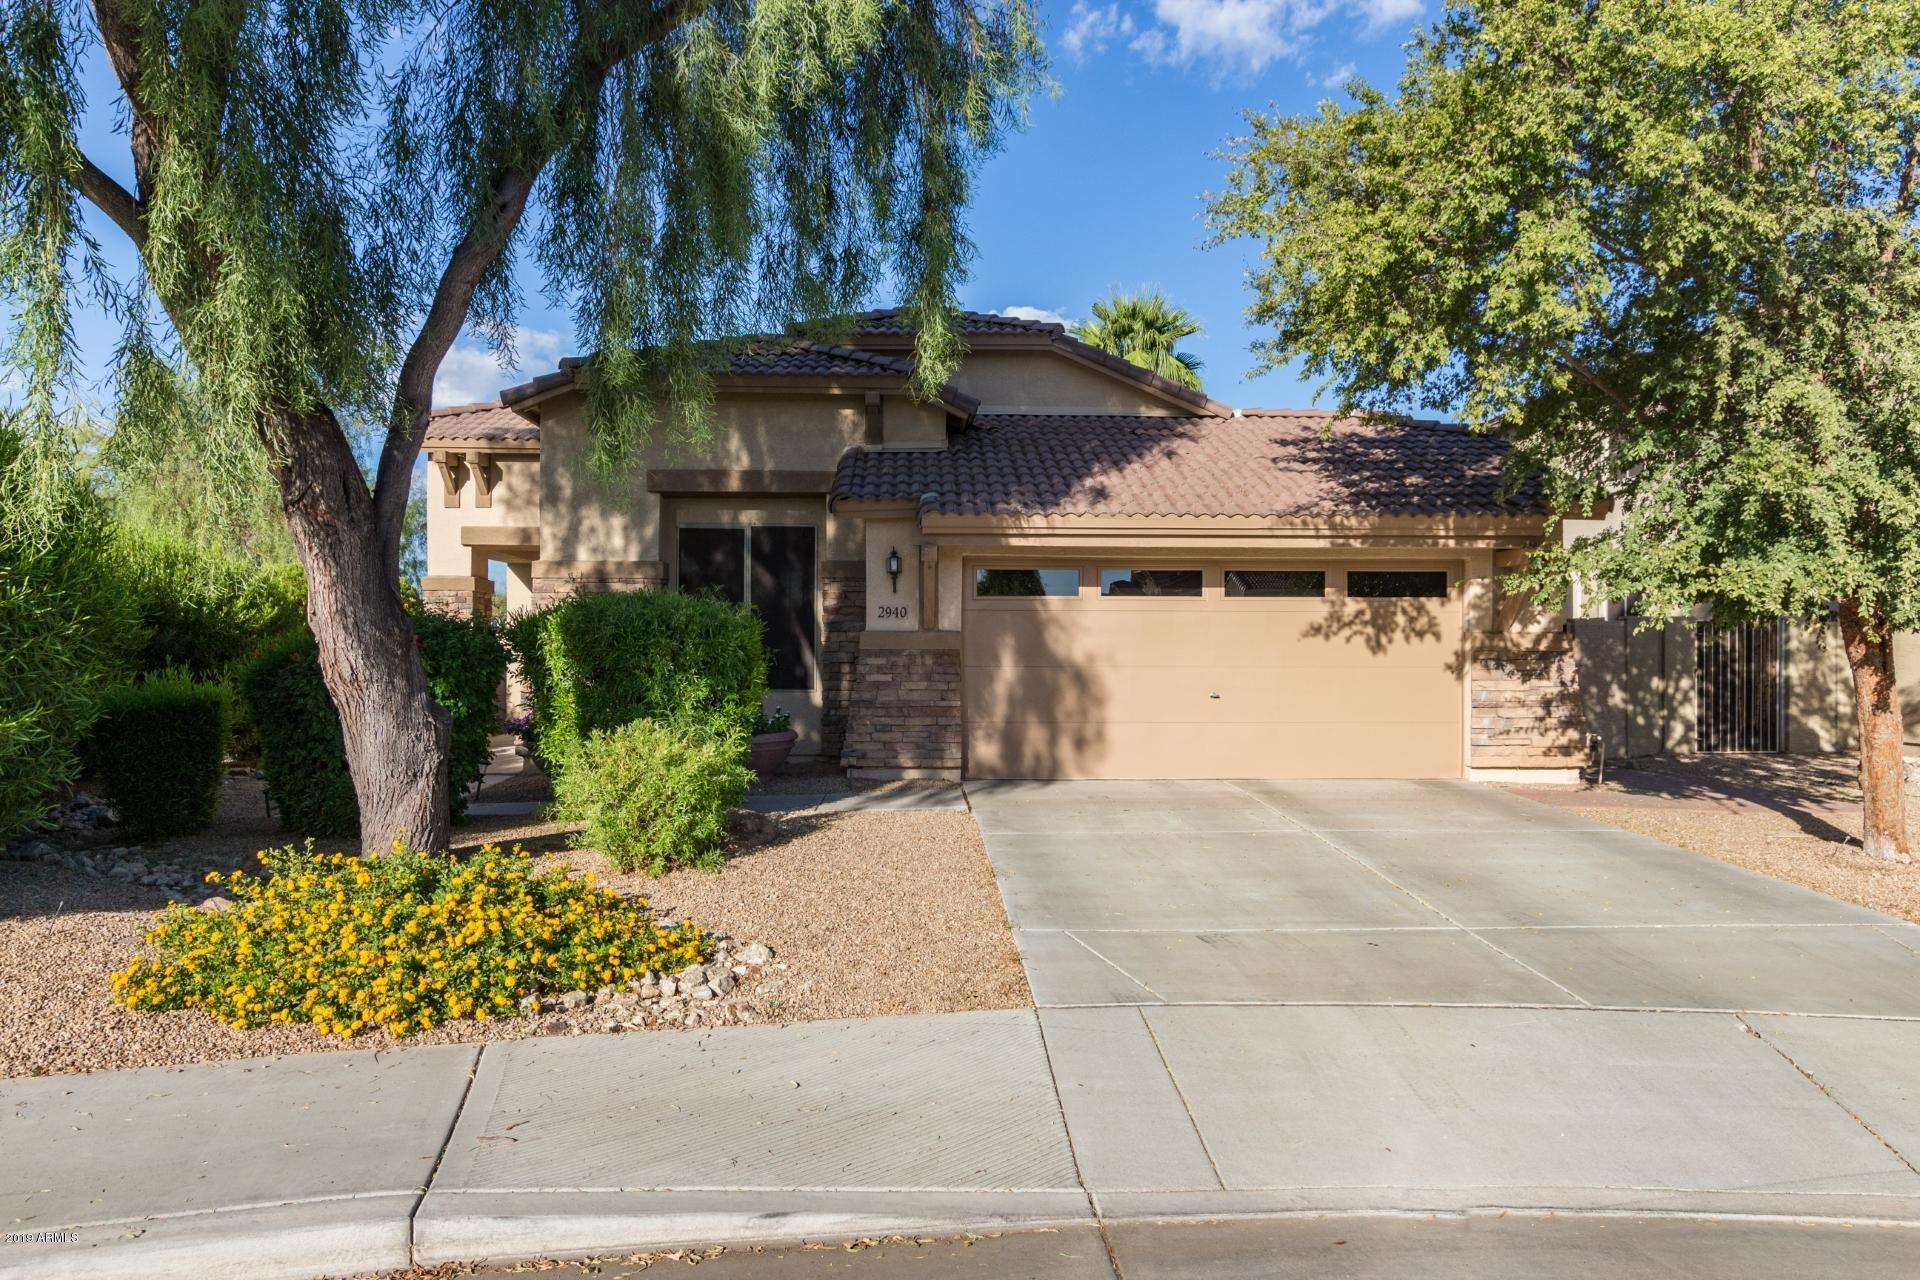 Photo of 2940 S Miller Drive, Chandler, AZ 85286